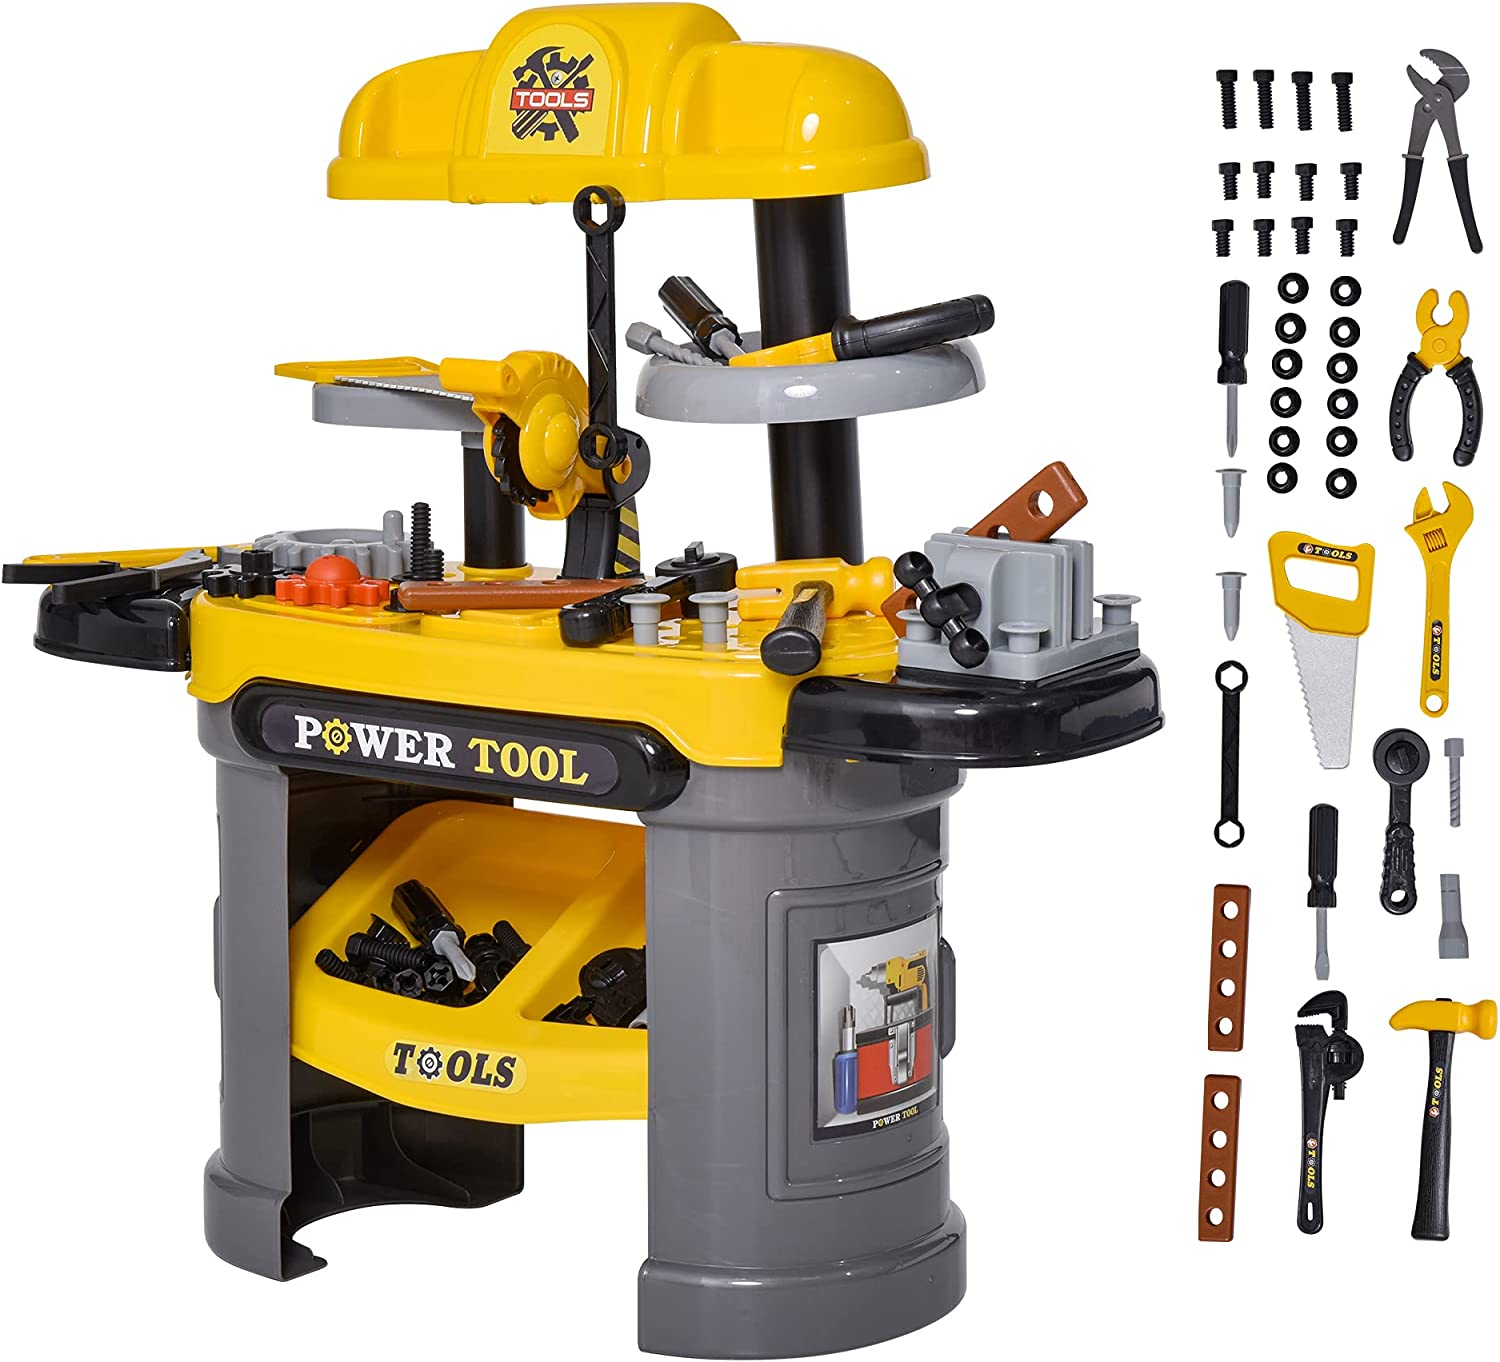 Qaba Play Toy Workbench for Kids 64 Pieces Tools Plus Case Storage Shelf Construction Tool Accessories Playset Construction Pretend Play Toy Kit Yellow Grey